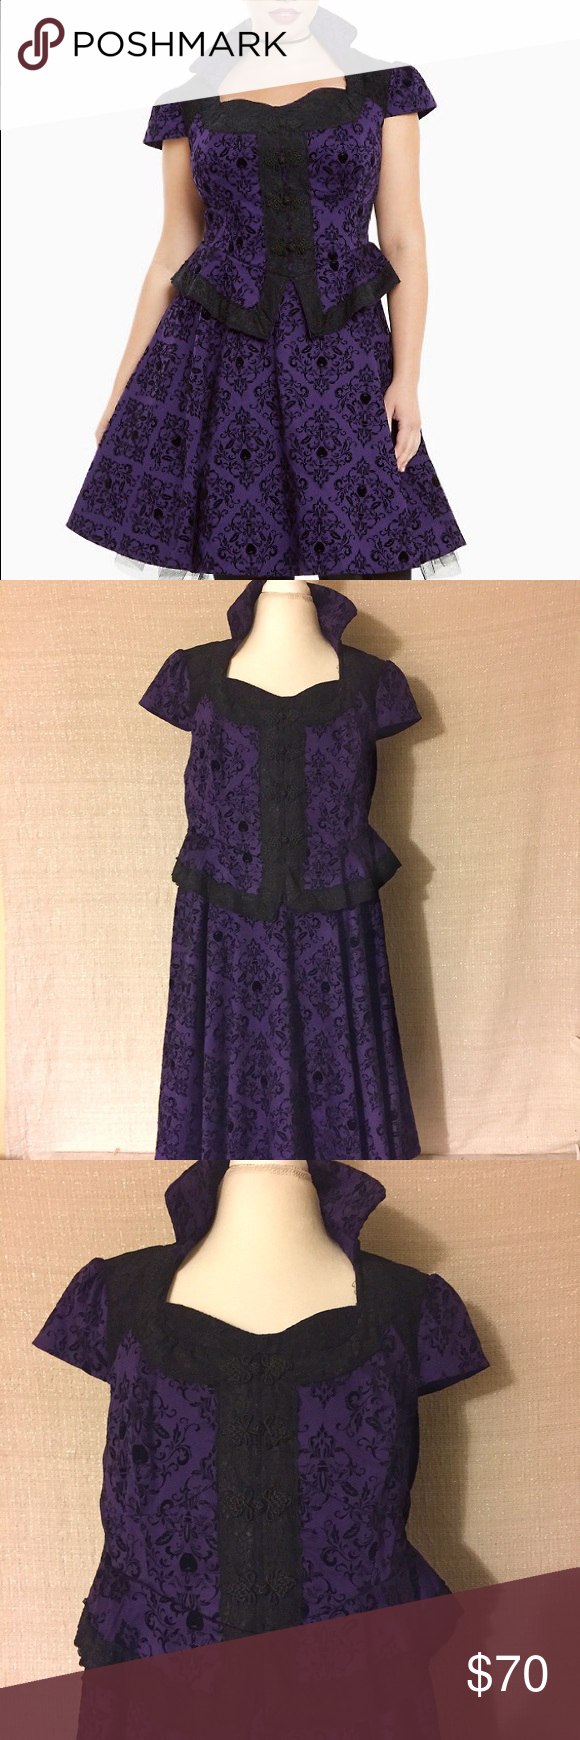 1b960cd865 NWOT once upon a time swing dress Fabulous